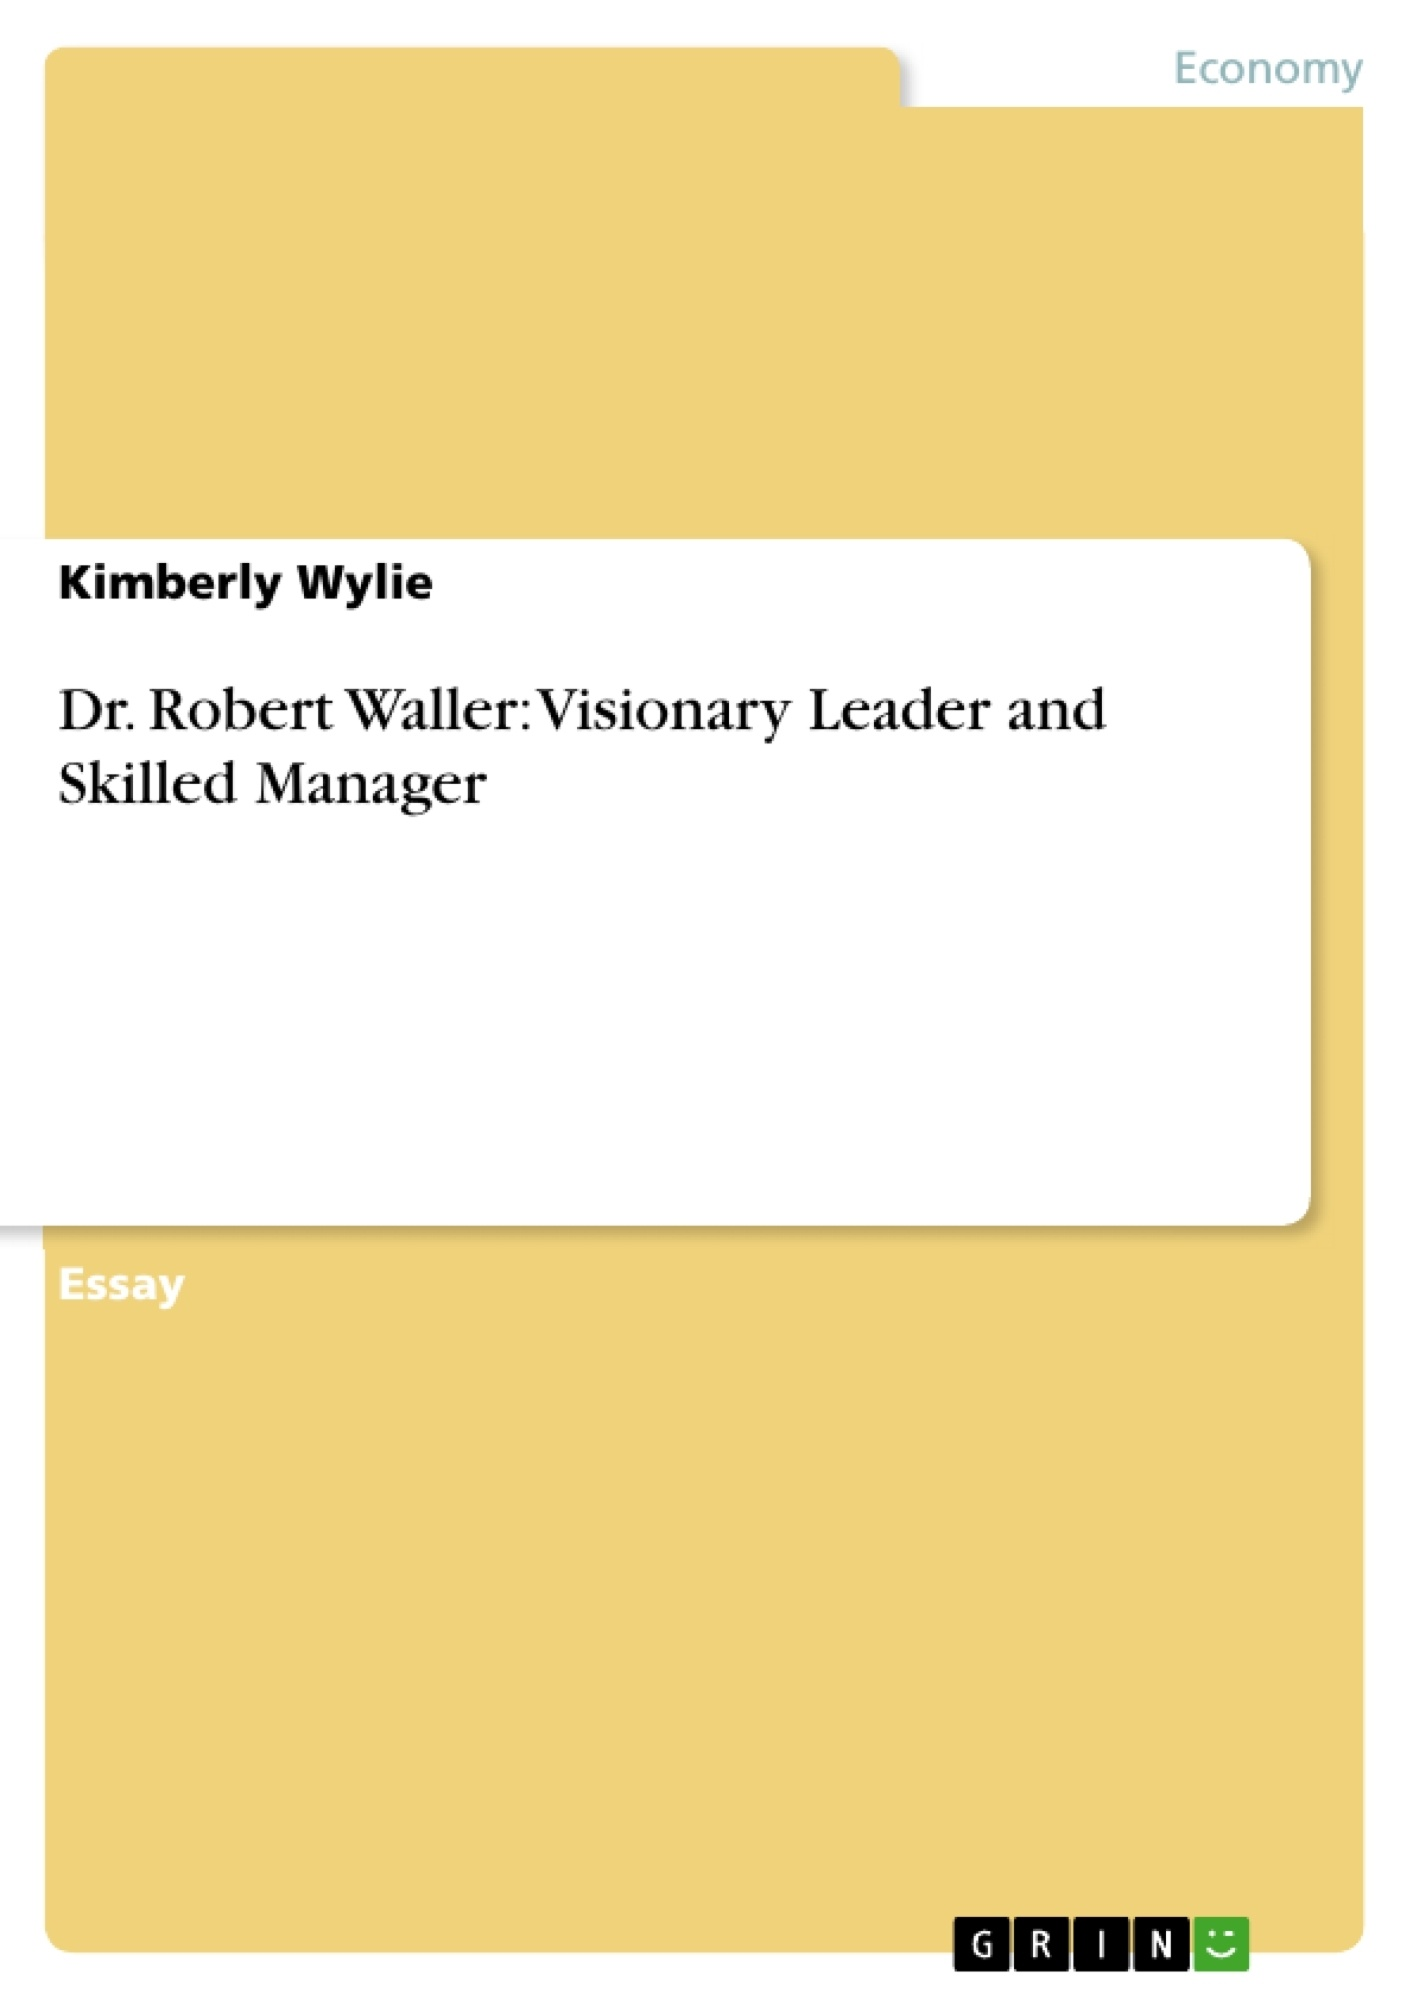 Title: Dr. Robert Waller: Visionary Leader and Skilled Manager